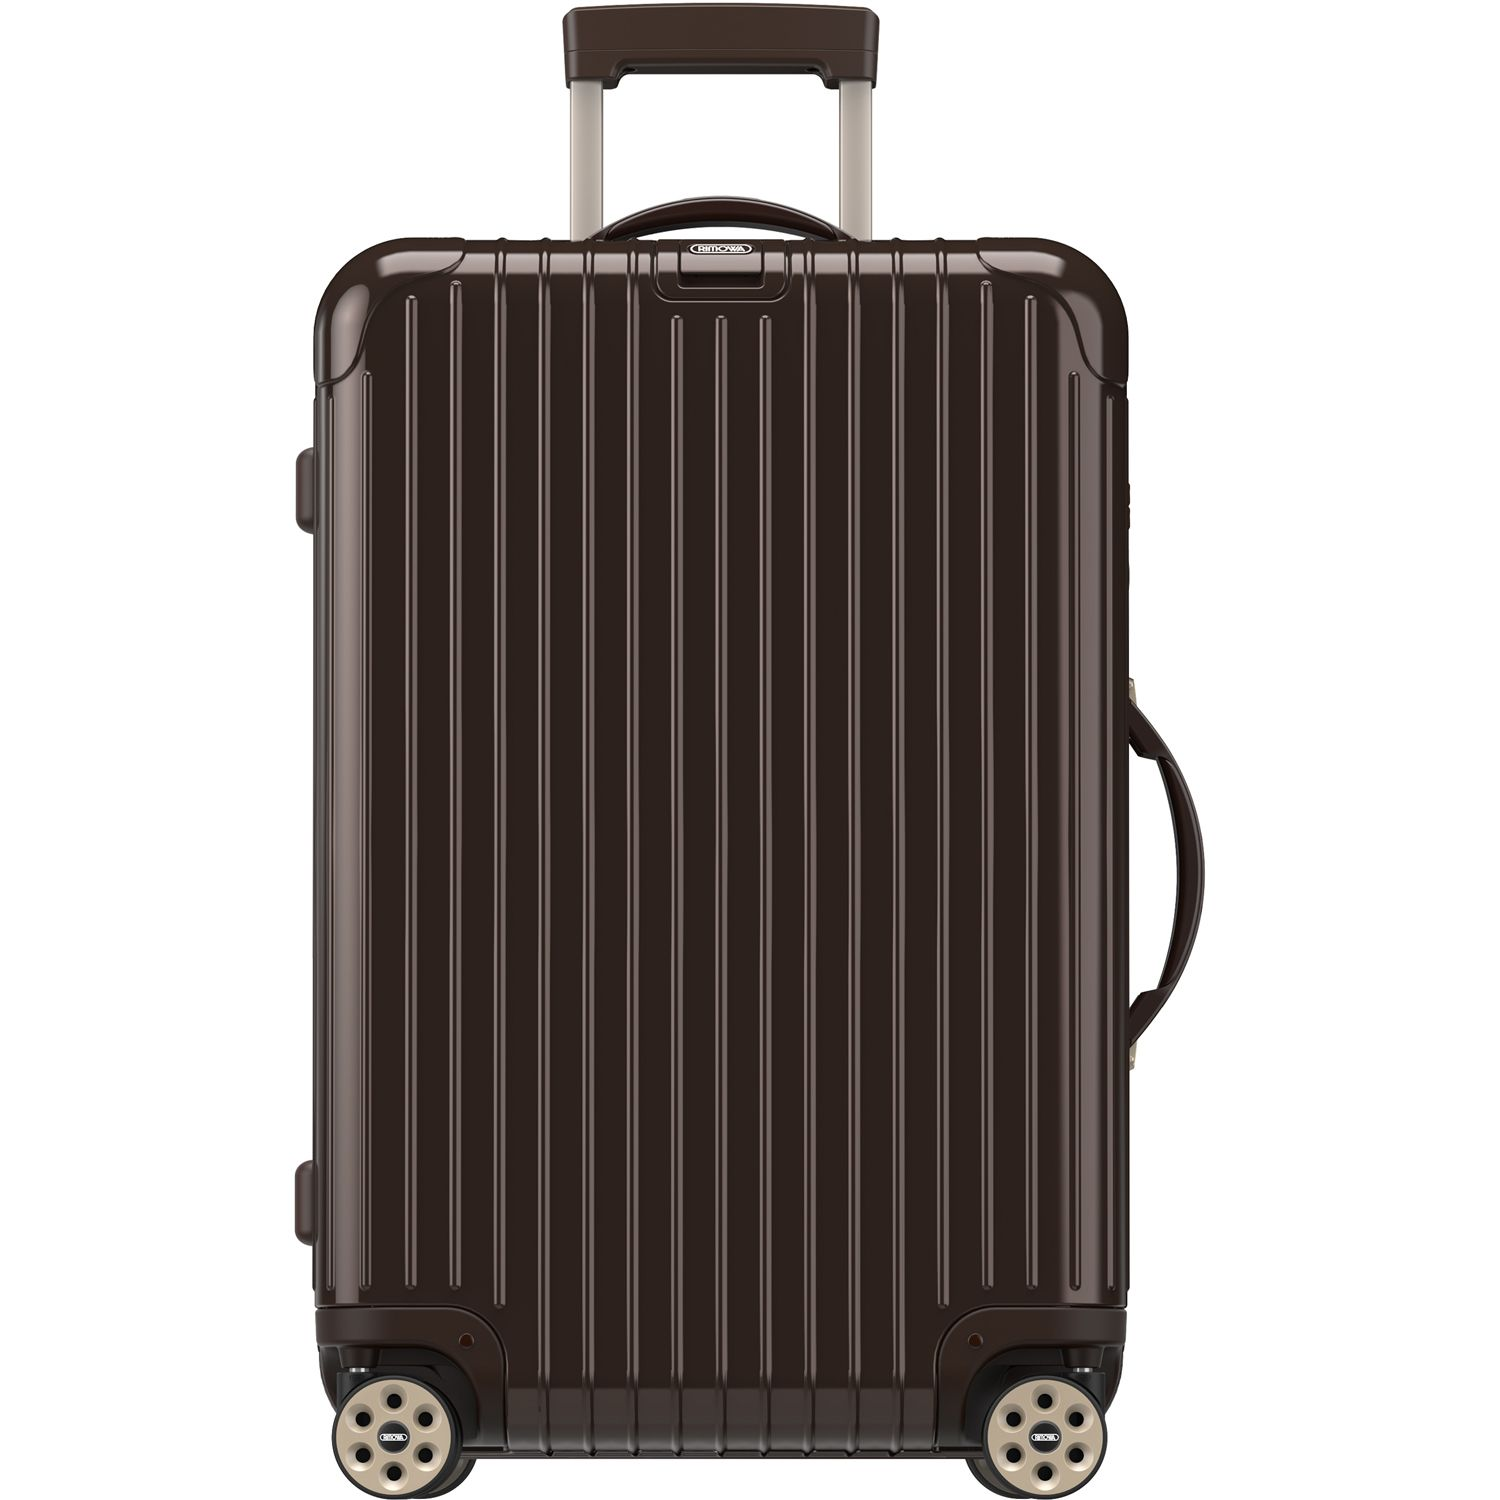 rimowa salsa deluxe multiwheel trolley 73 electronic tag kaufen bei markenkoffer. Black Bedroom Furniture Sets. Home Design Ideas